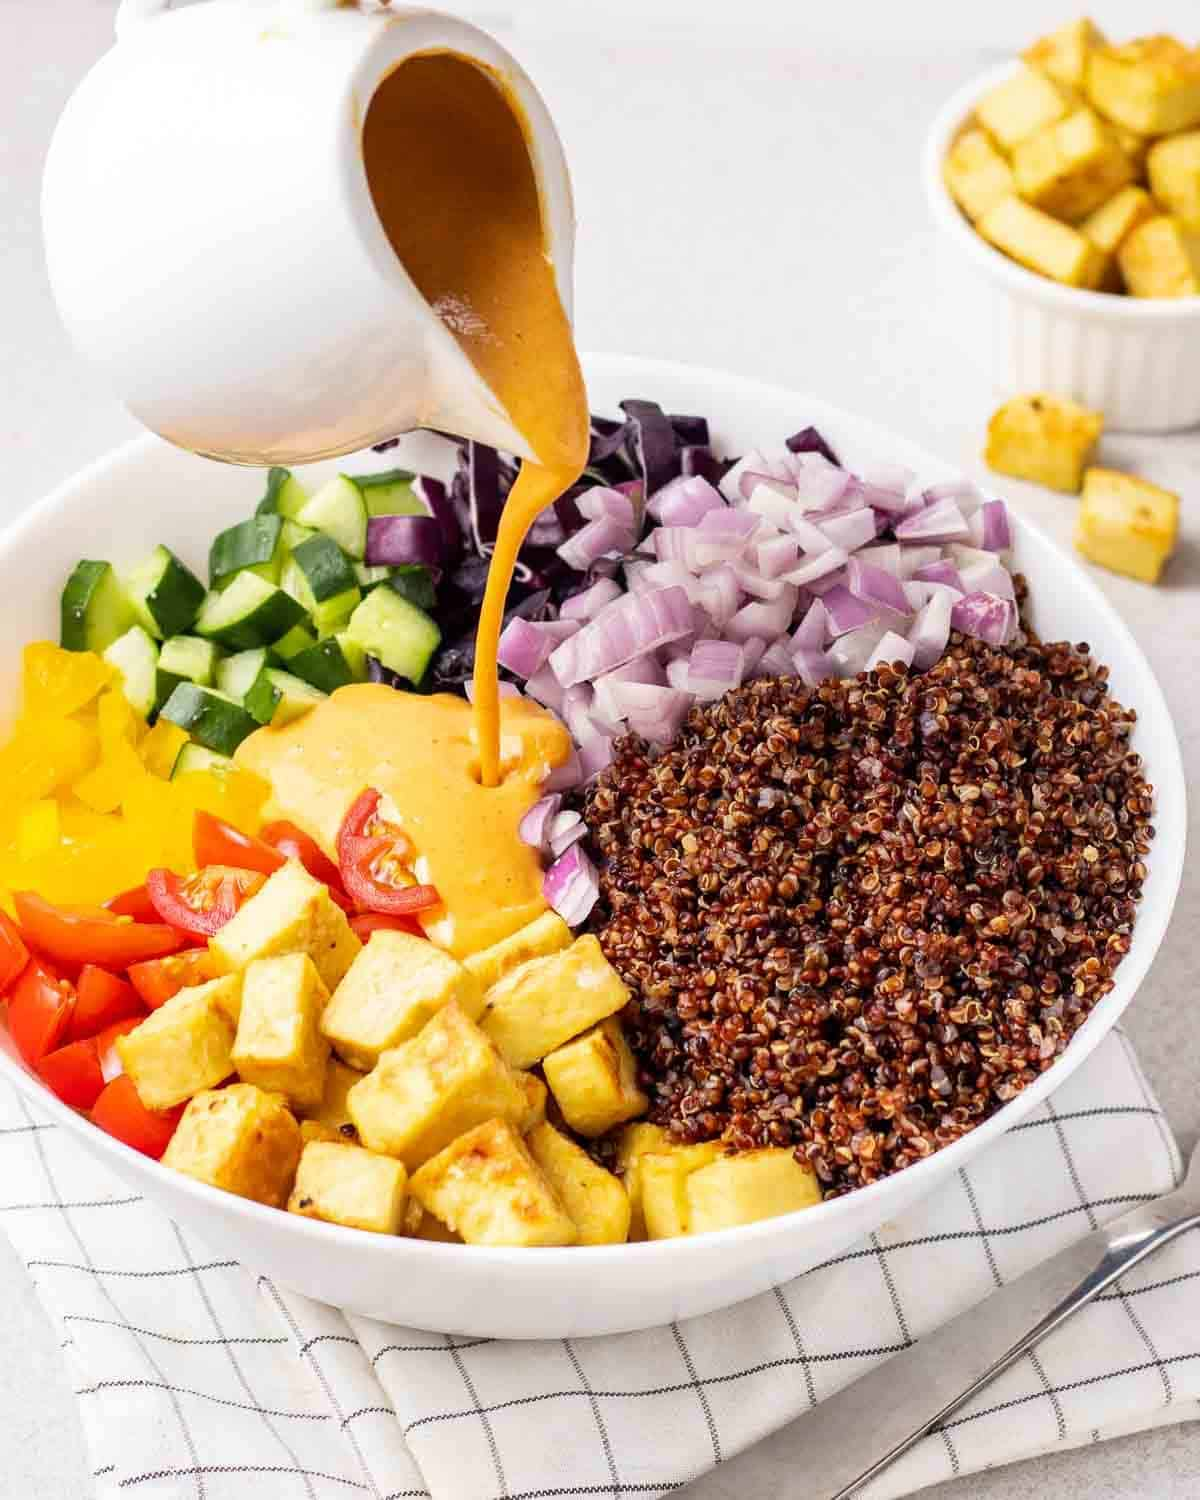 Pouring curry dressing into a bowl of salad.